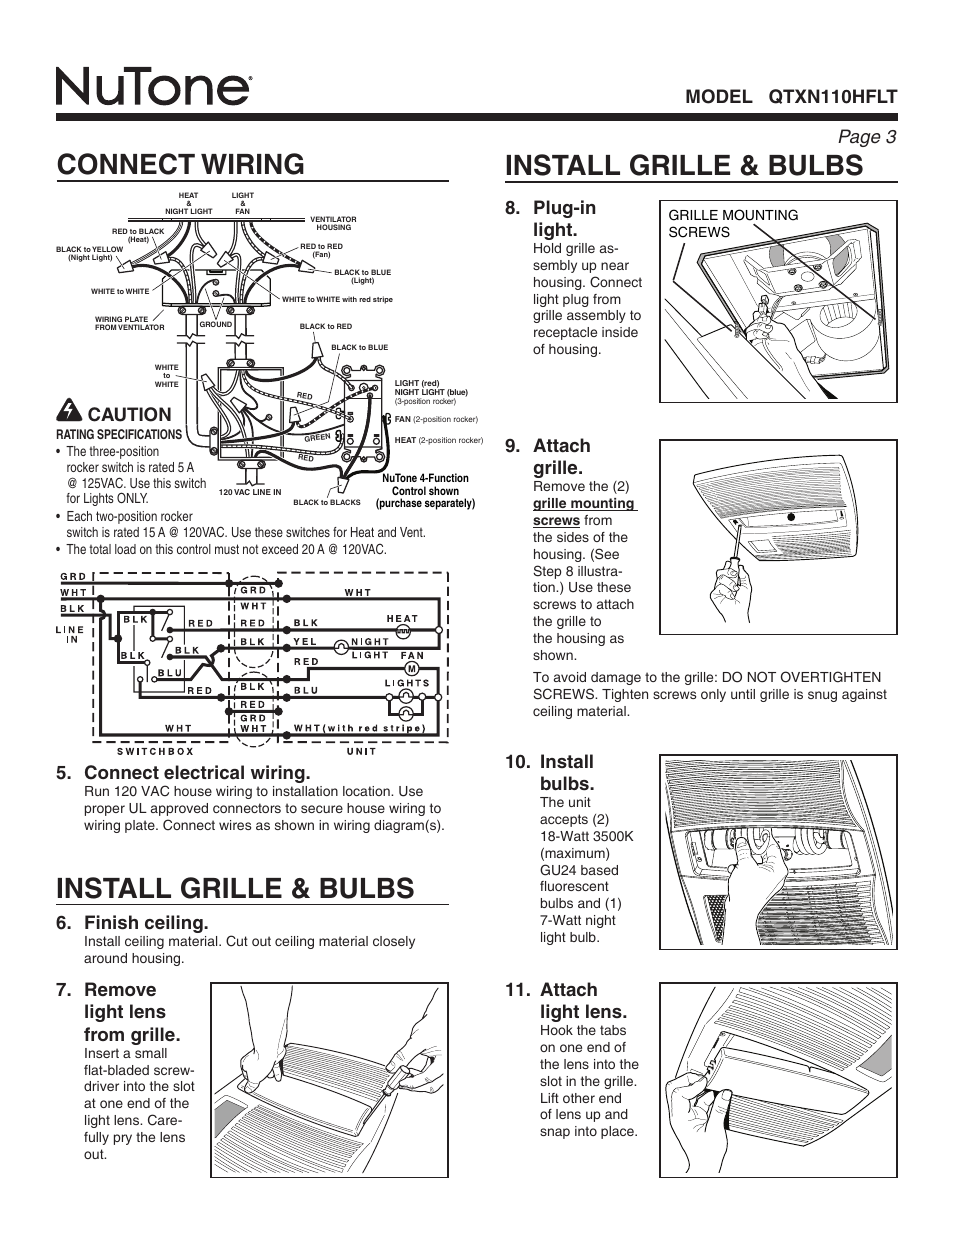 Install Grille Bulbs Connect Wiring Page Wires Model Qtxn110hflt 8 Plug In Light Nutone User Manual 3